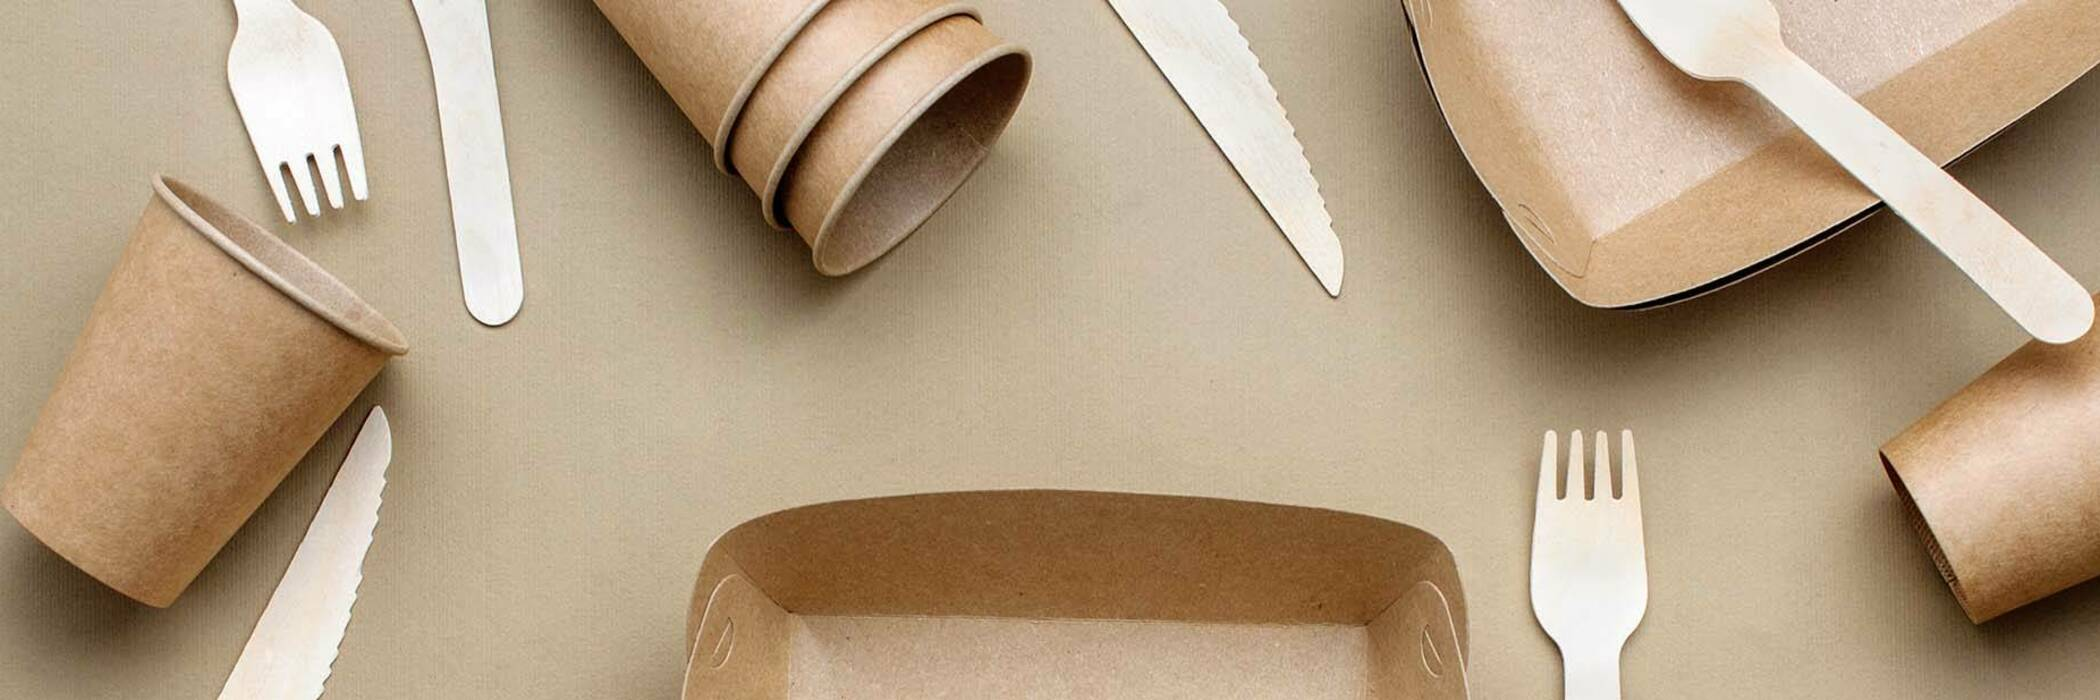 20may opinion compostable packaging hero